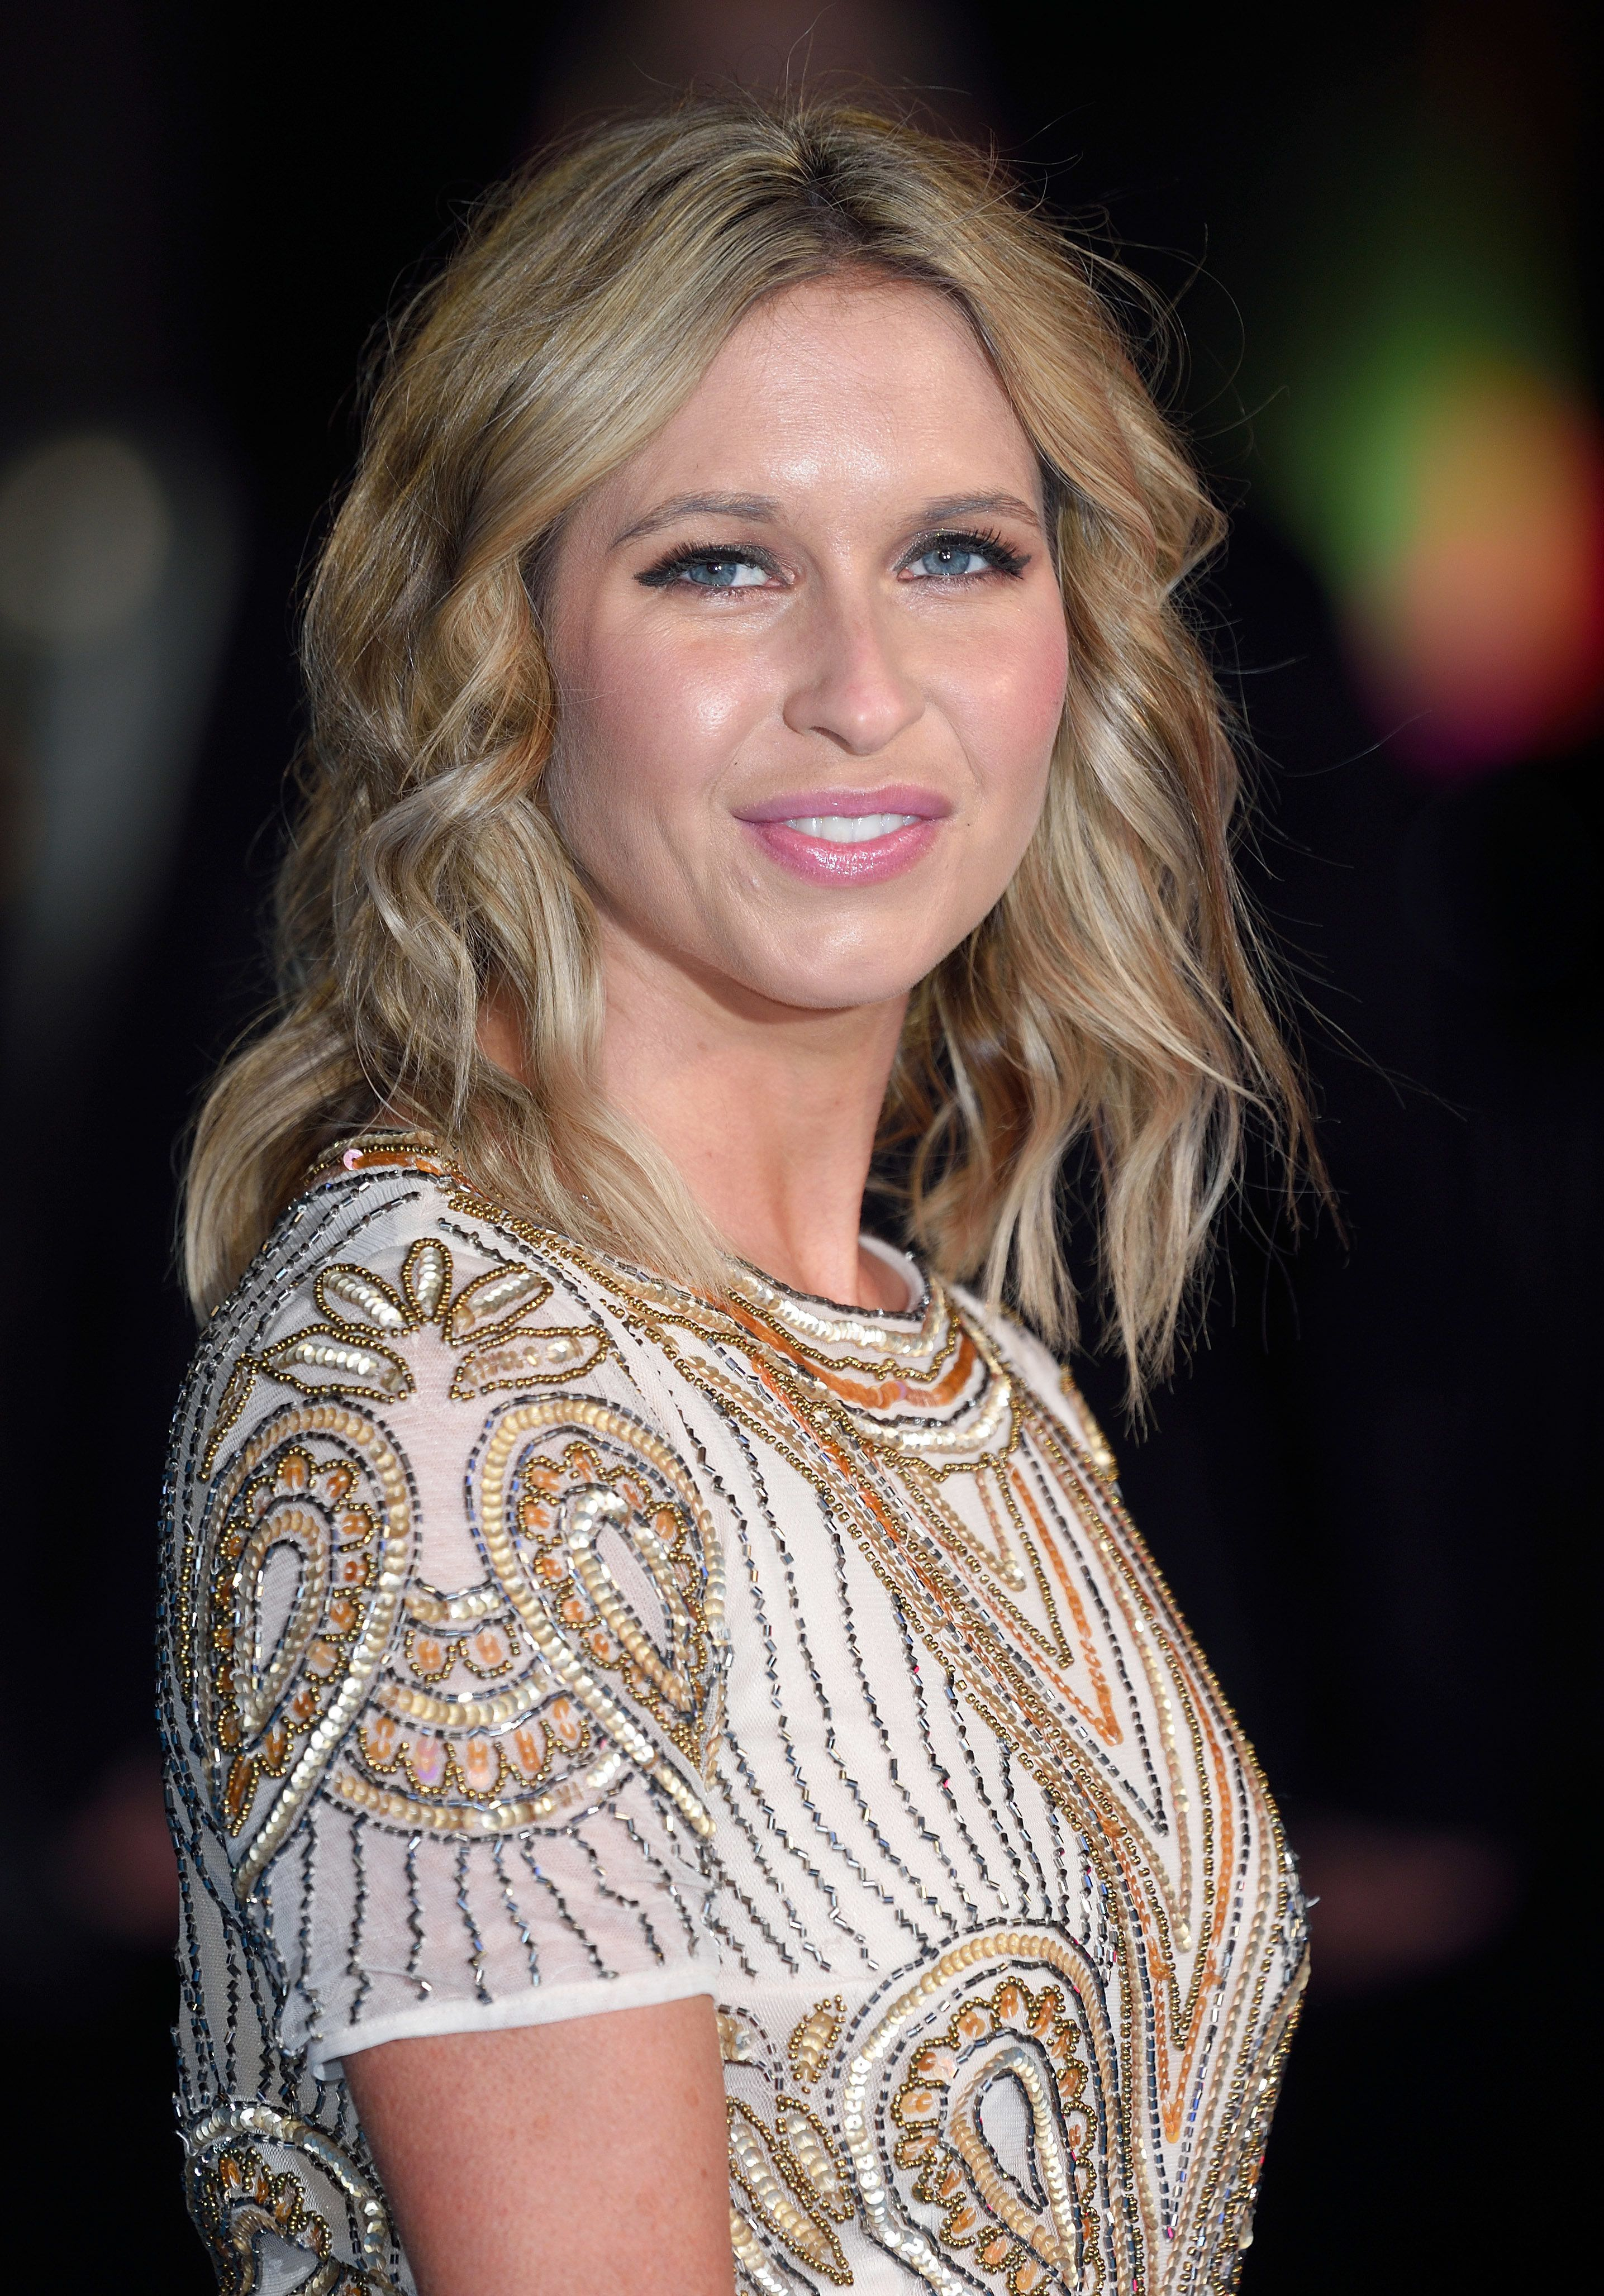 Brooke Kinsella Working With 'EastEnders' On Hard-Hitting Knife Crime Plot